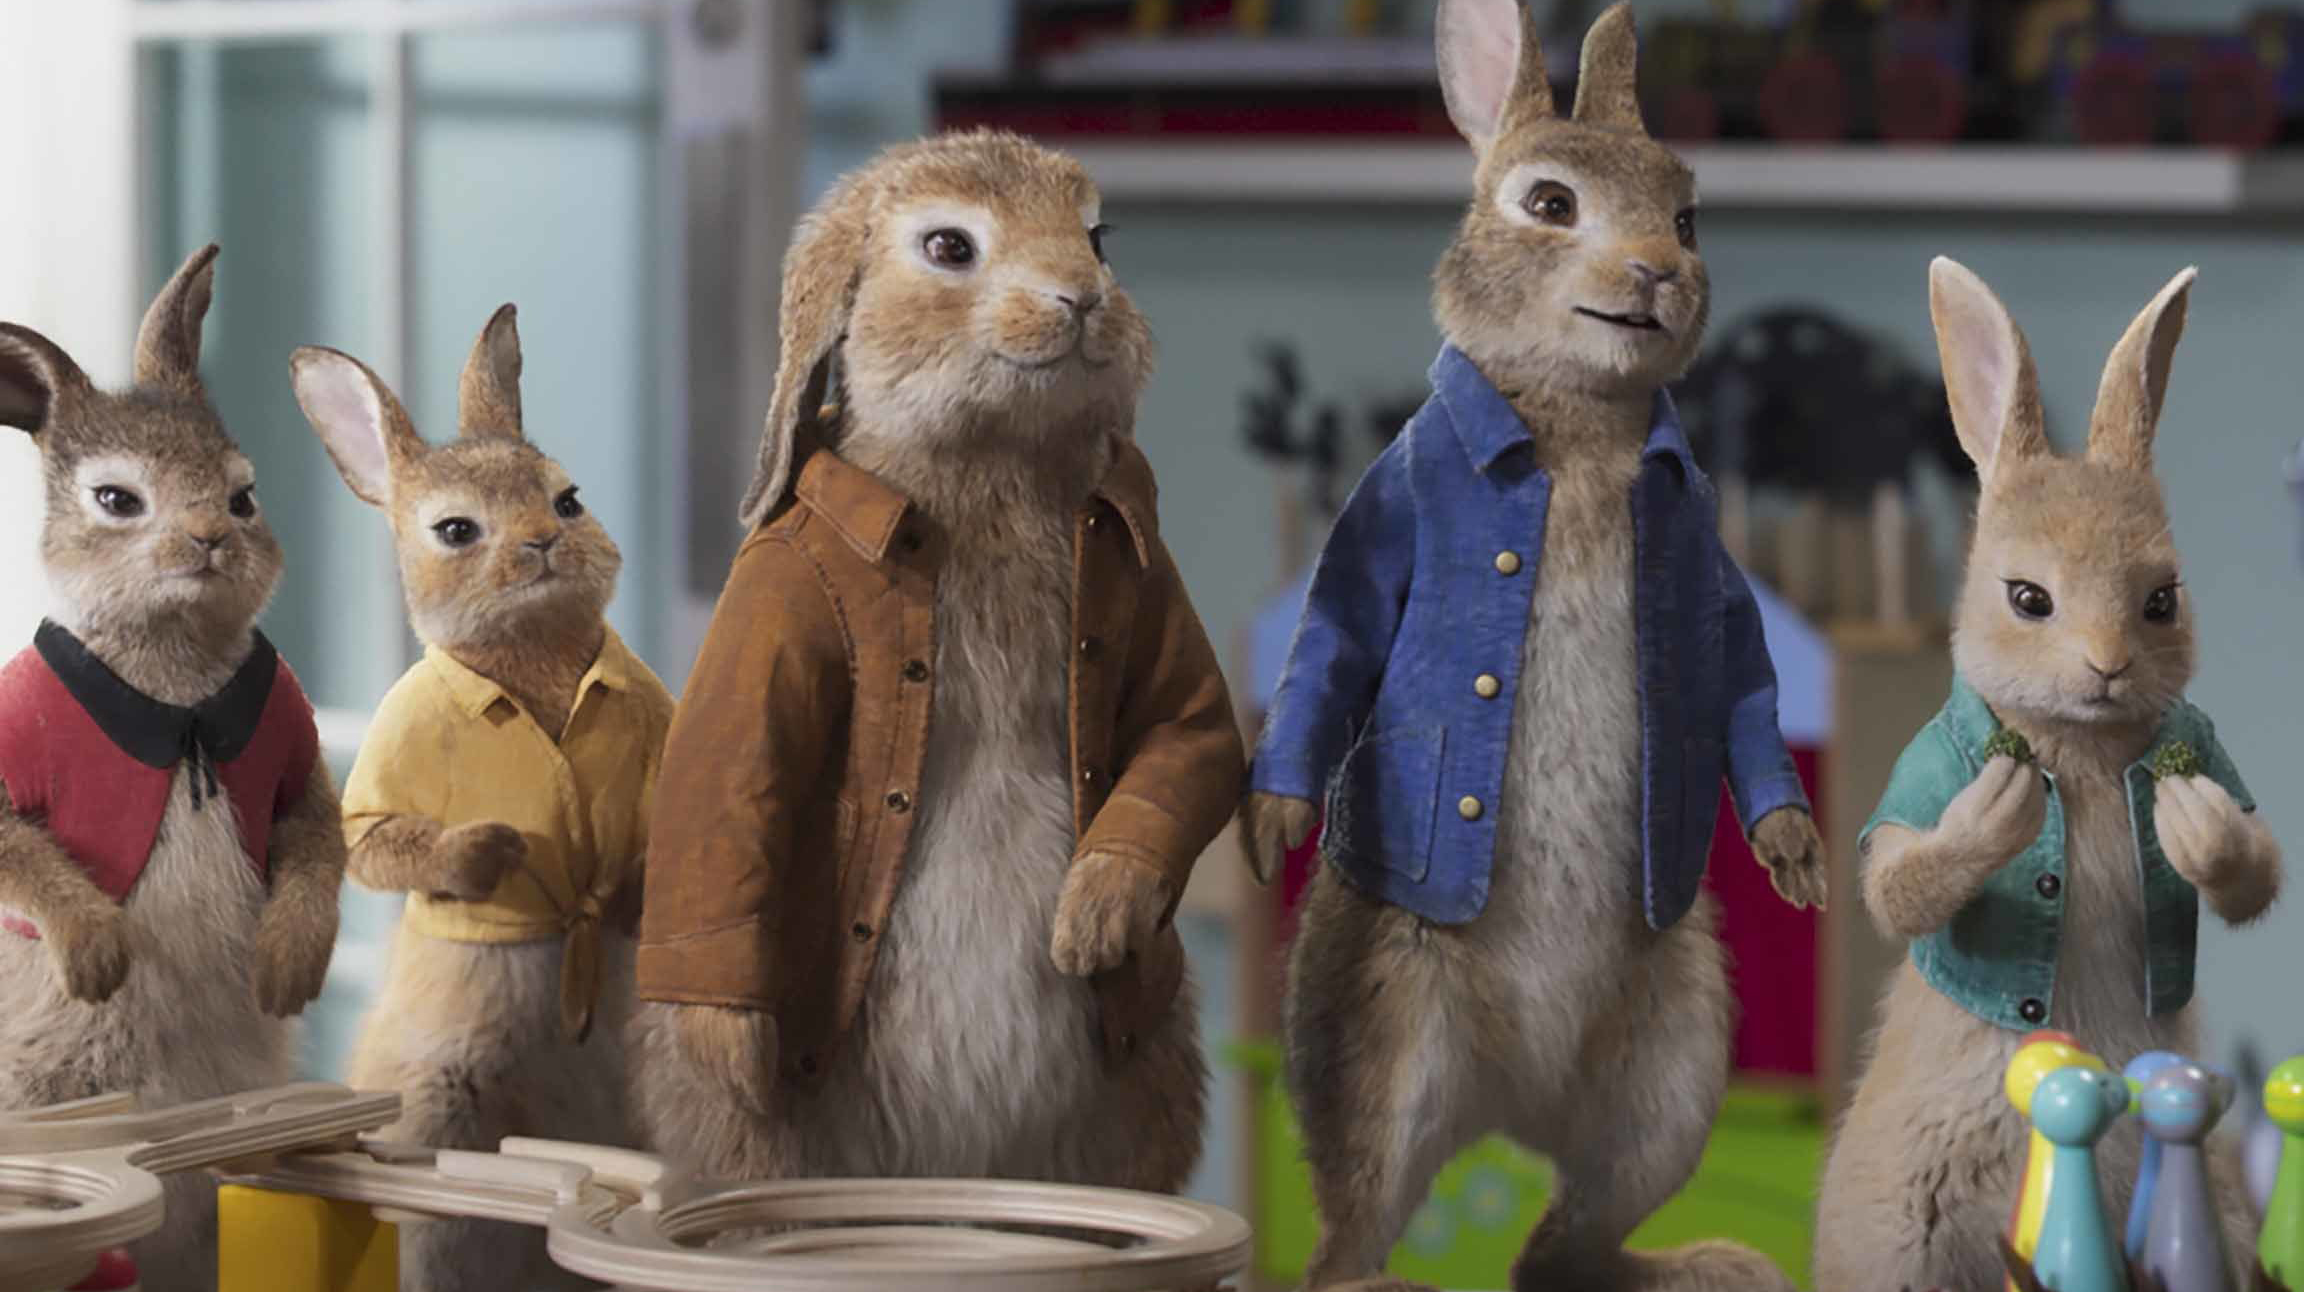 La secuela de Peter Rabbit saldrá en 2021